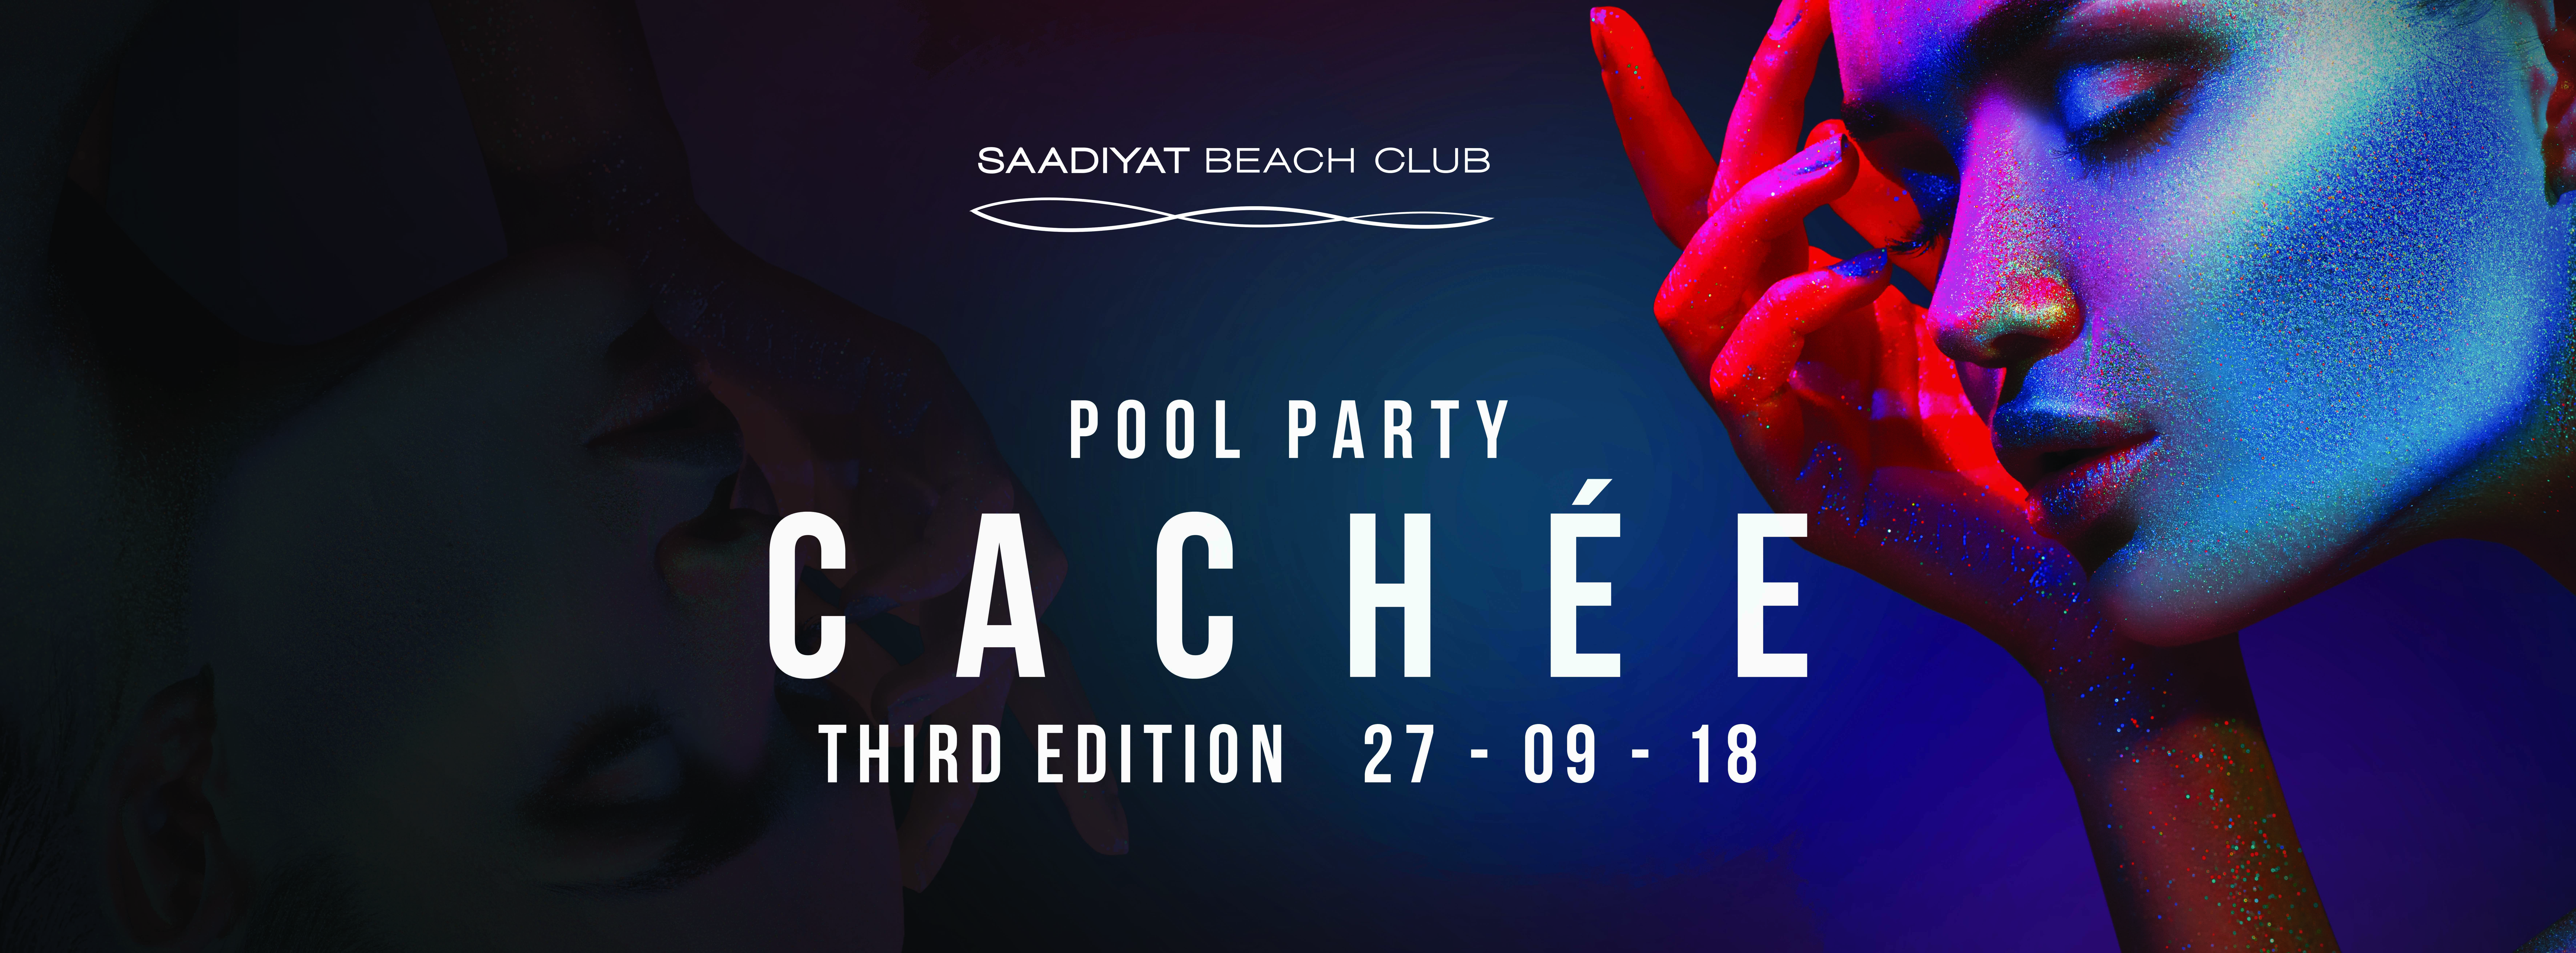 CACHÉE Pool Party - THIRD EDITION @ Saadiyat Beach Club